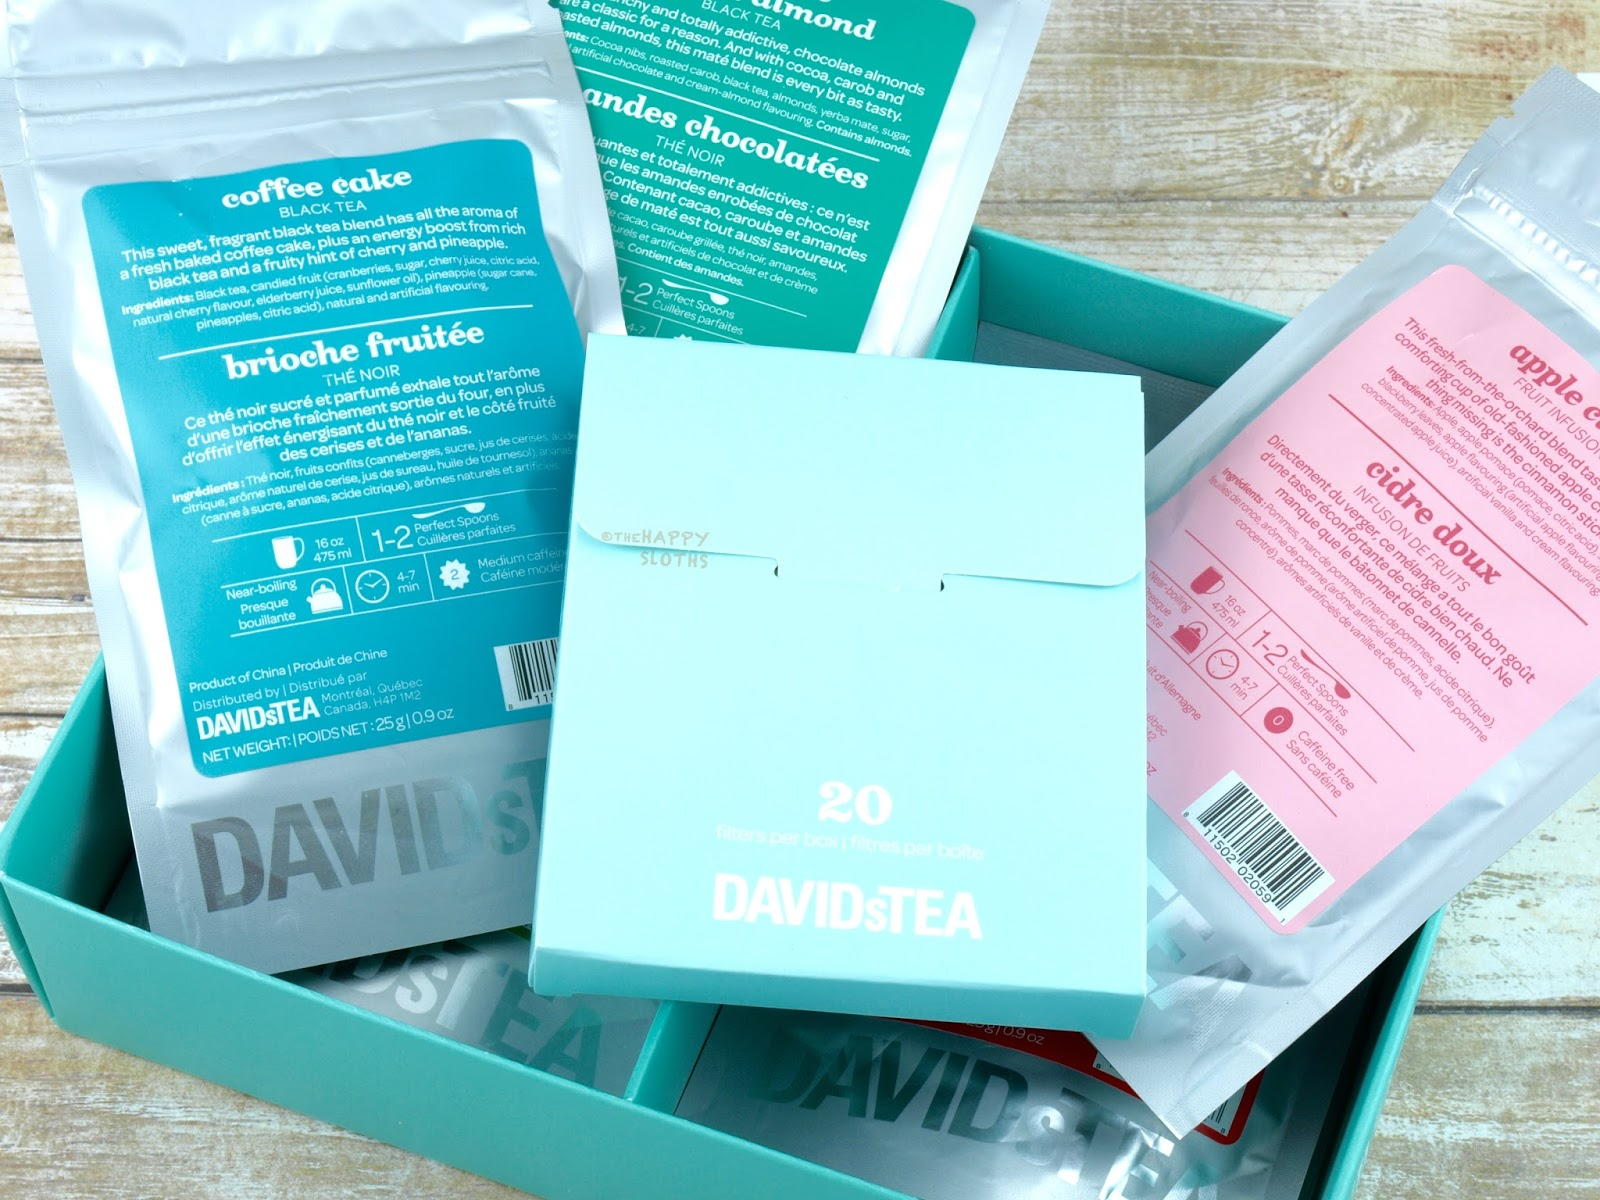 DAVIDsTea Warm and Cozy Teas